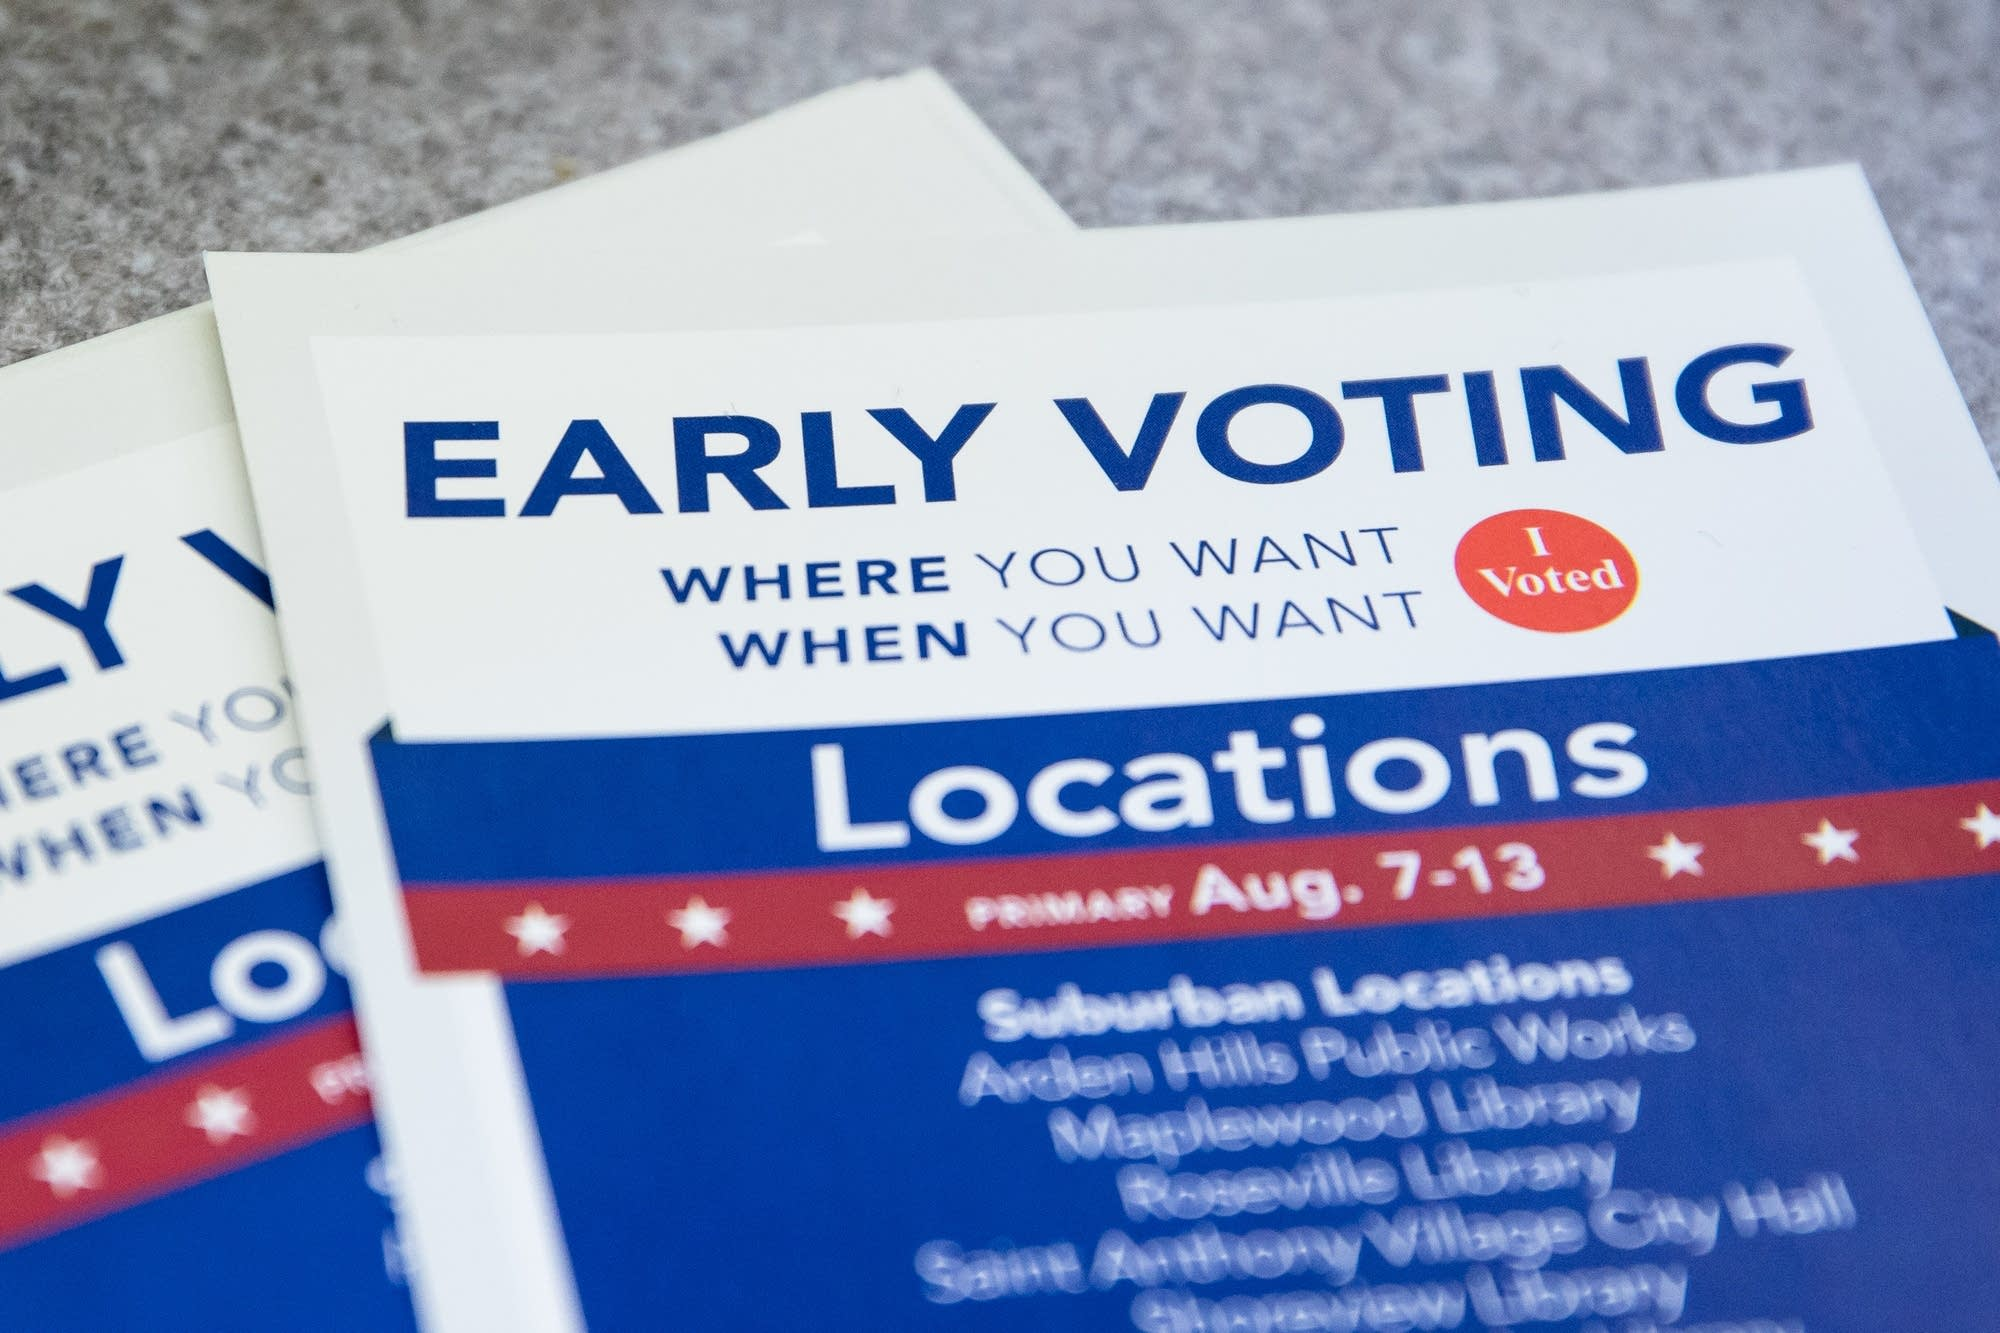 An early voting pamphlet sits on a table.